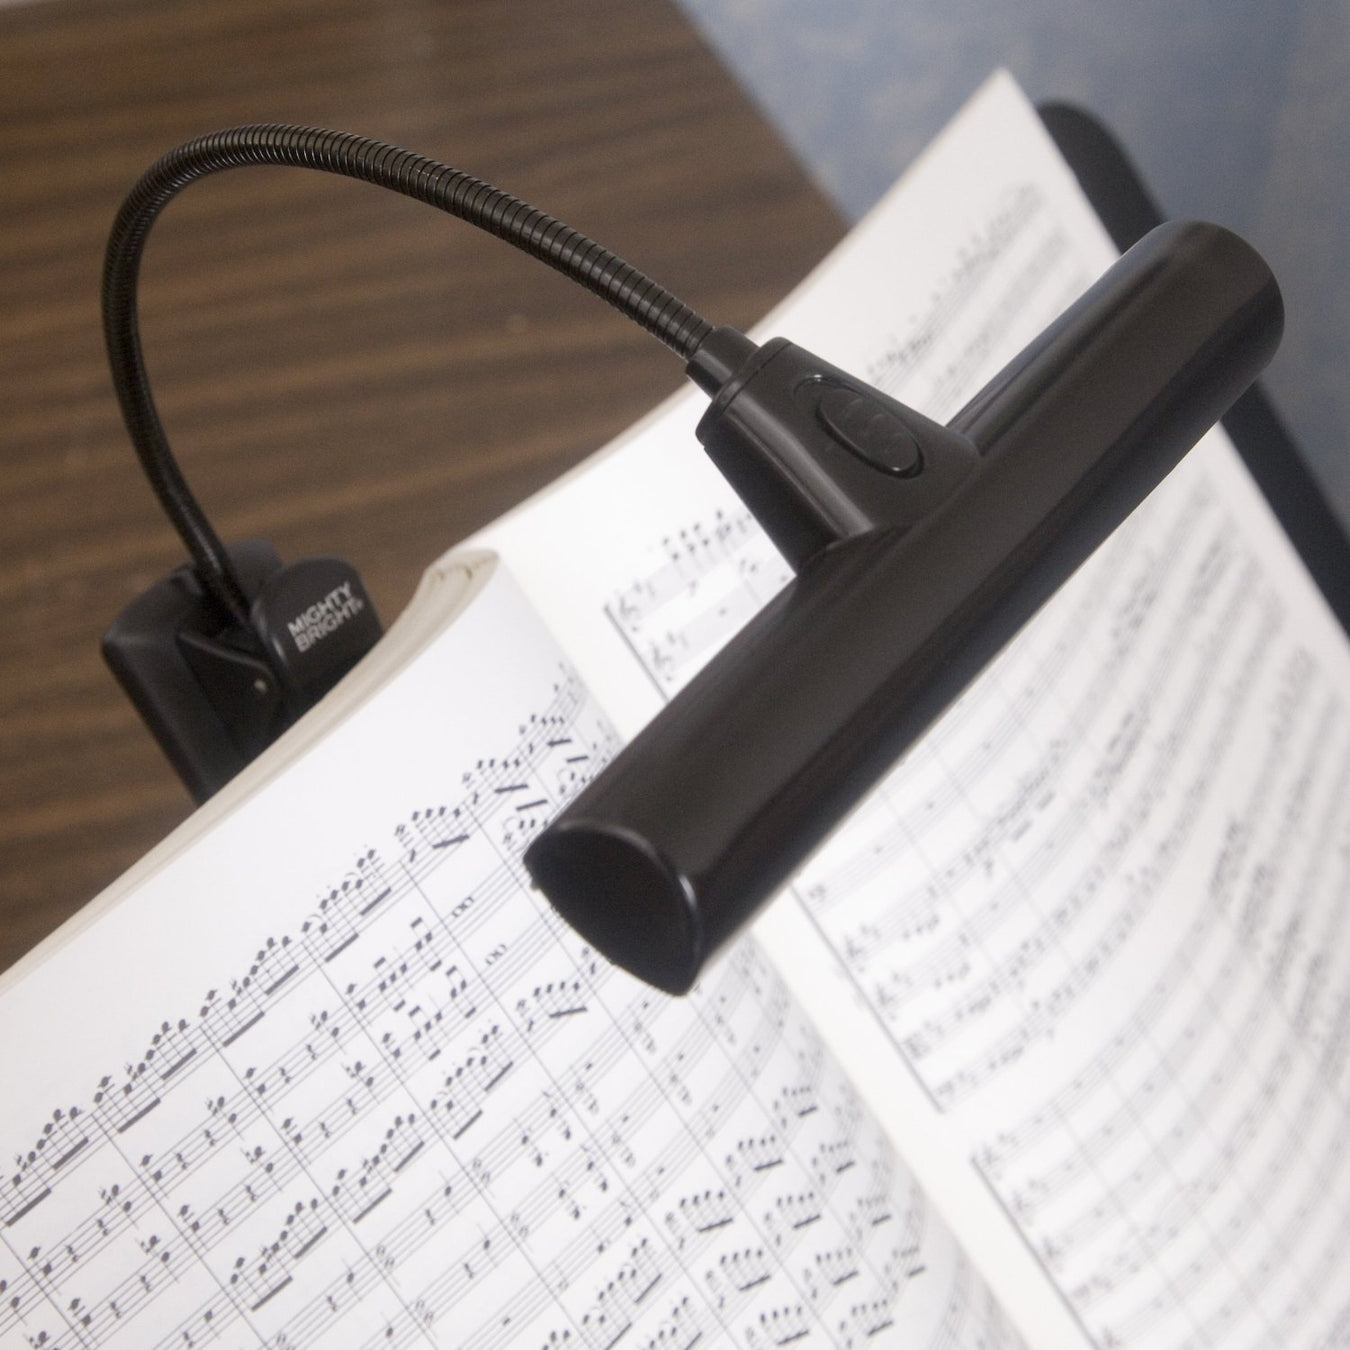 Battery Powered Music Orchestra Light in Black Clipped To A Music Book Illuminating The Pages